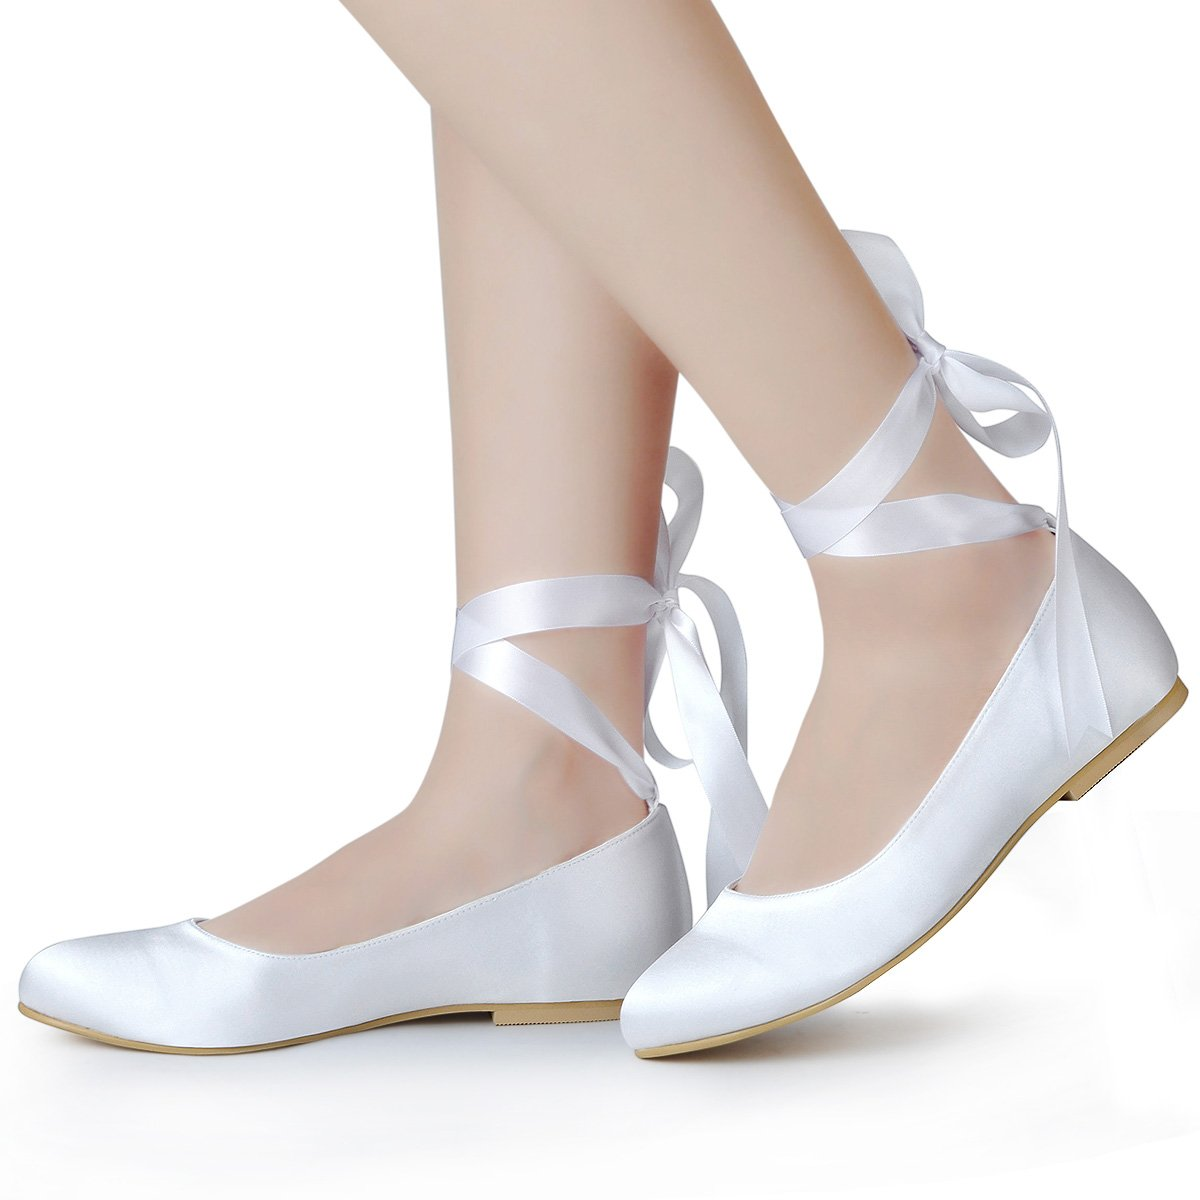 Retro Vintage Flats and Low Heel Shoes ElegantPark Women Comfort Flats Closed Toe Ribbon Tie Satin Wedding Bridal Shoes $42.95 AT vintagedancer.com